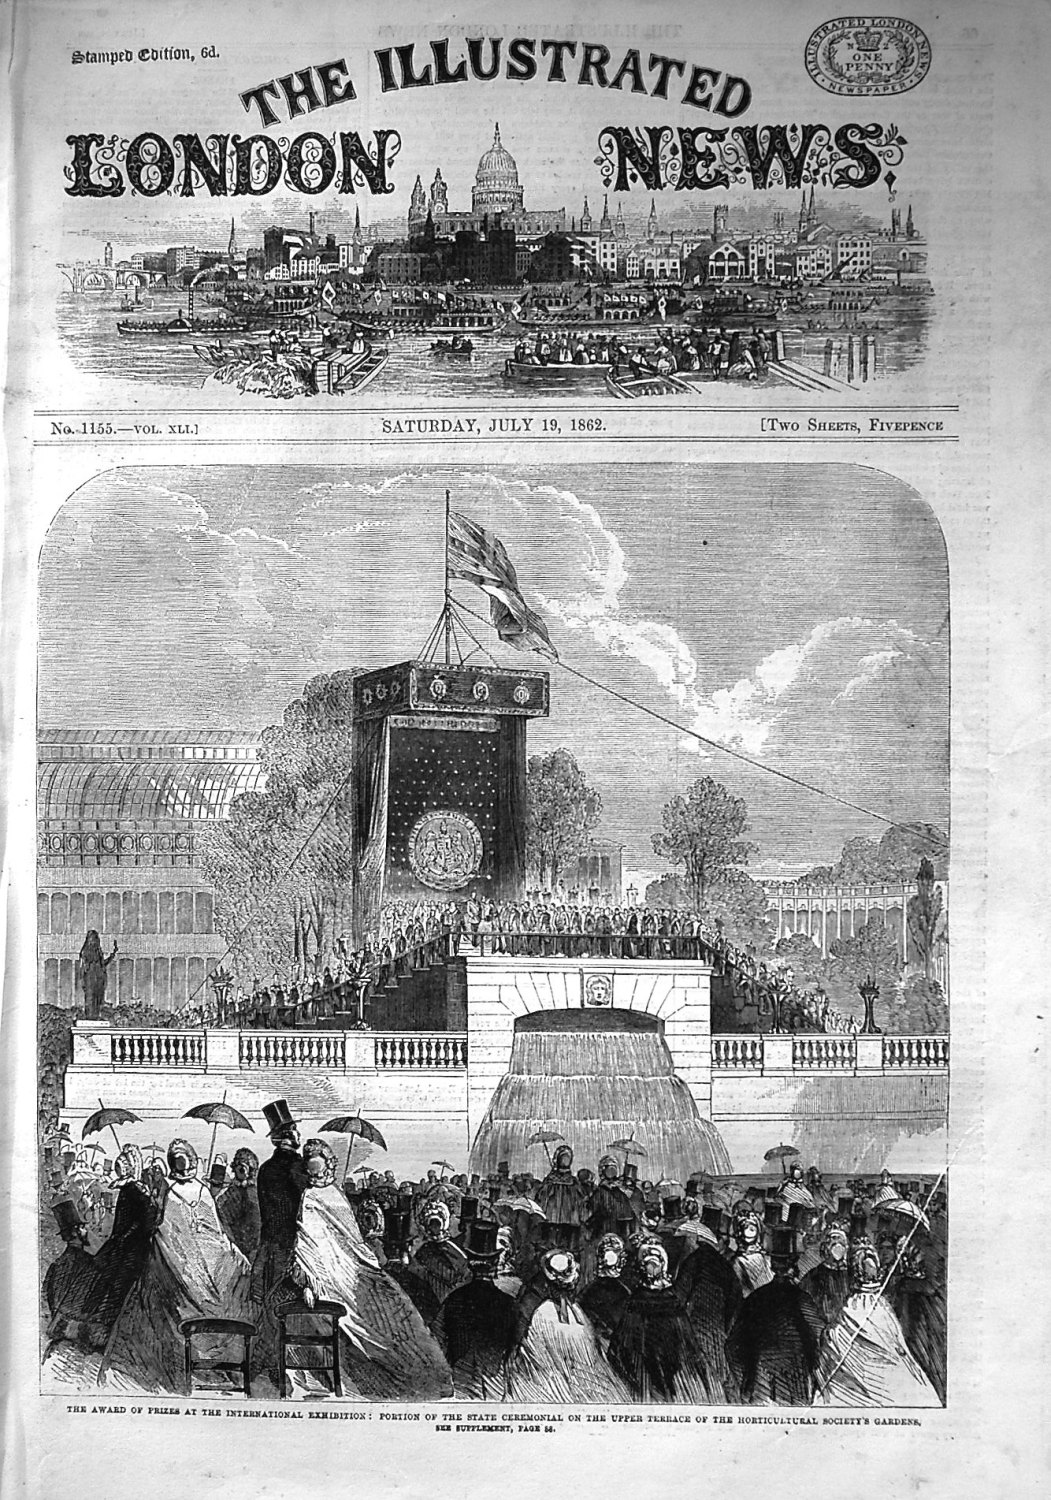 Illustrated London News July 19th 1862.